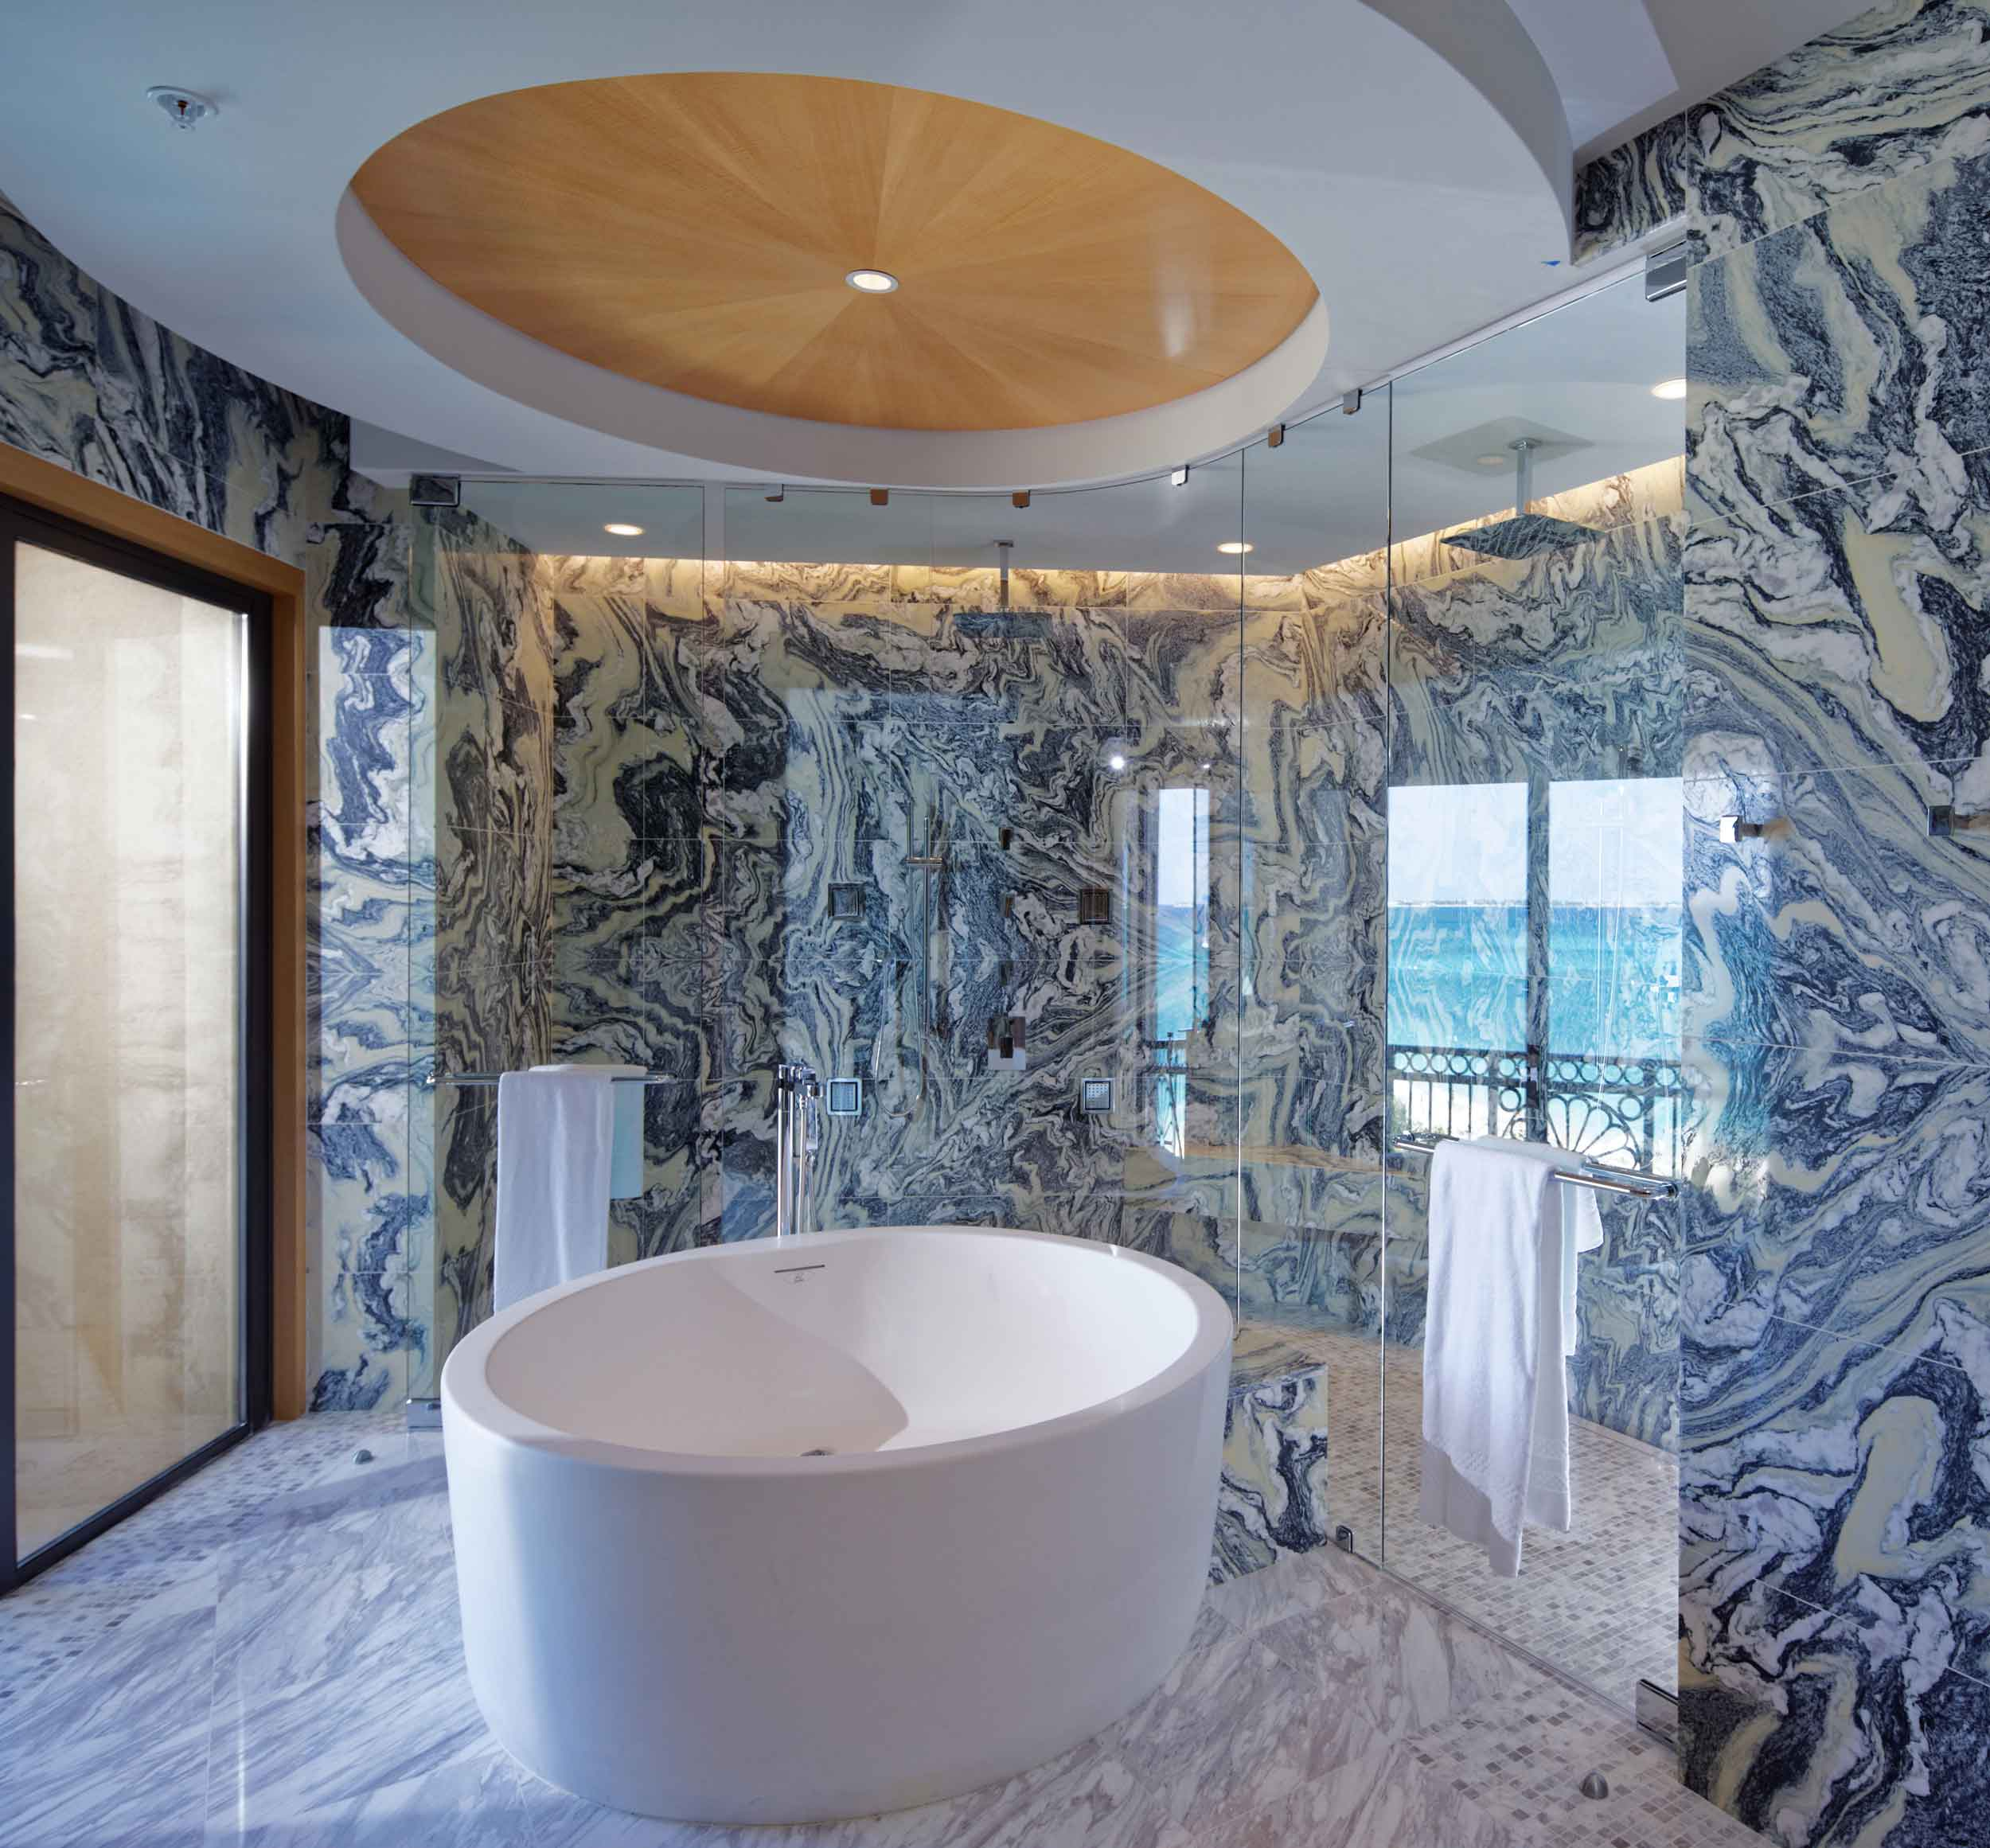 One of the finest beaches in the Caribbean (Grand Cayman's Seven Mile Beach) is on full display from the master bathroom of this ultra-luxury penthouse atop the Ritz-Carlton Grand Cayman. The bespoke finishes were designed to complement the beauty of the home's tropical environment, and include a huge walk-in rainforest shower in blue marble tile, a soaking tub, and televisions built into the mirrors.